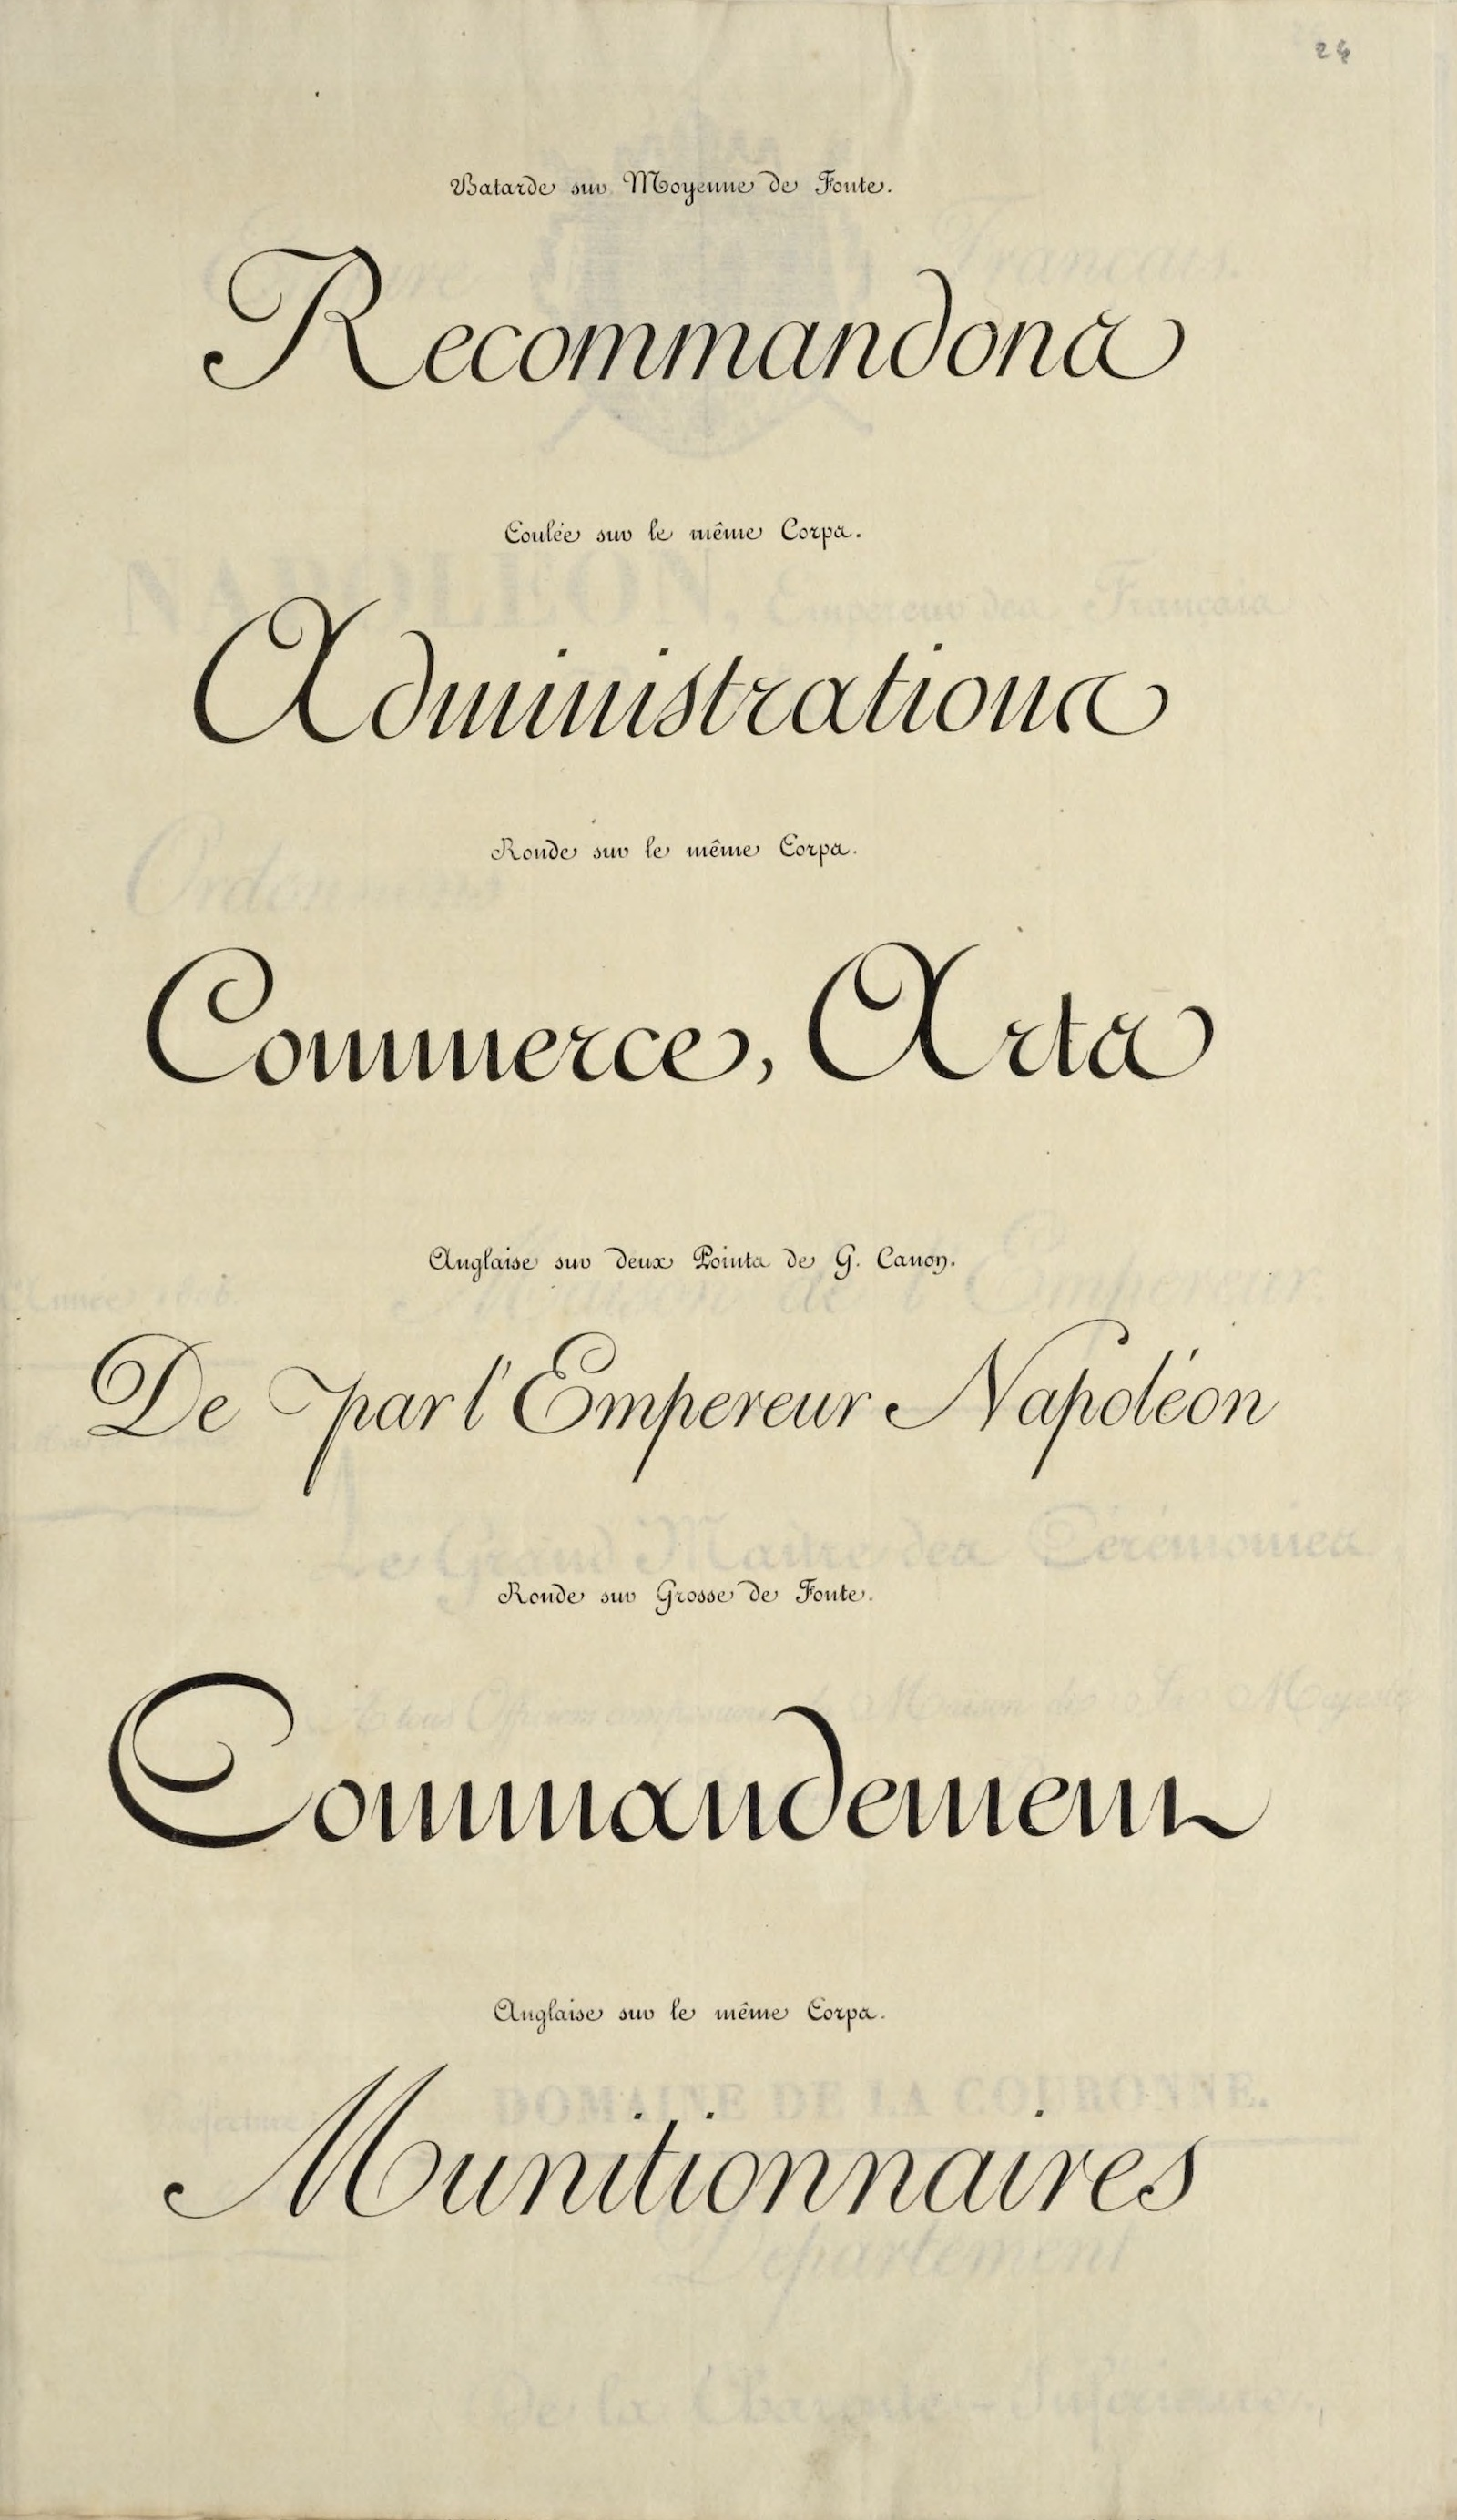 Altesse, a formal script influenced by copperplate writing masters by Jean François Porchez